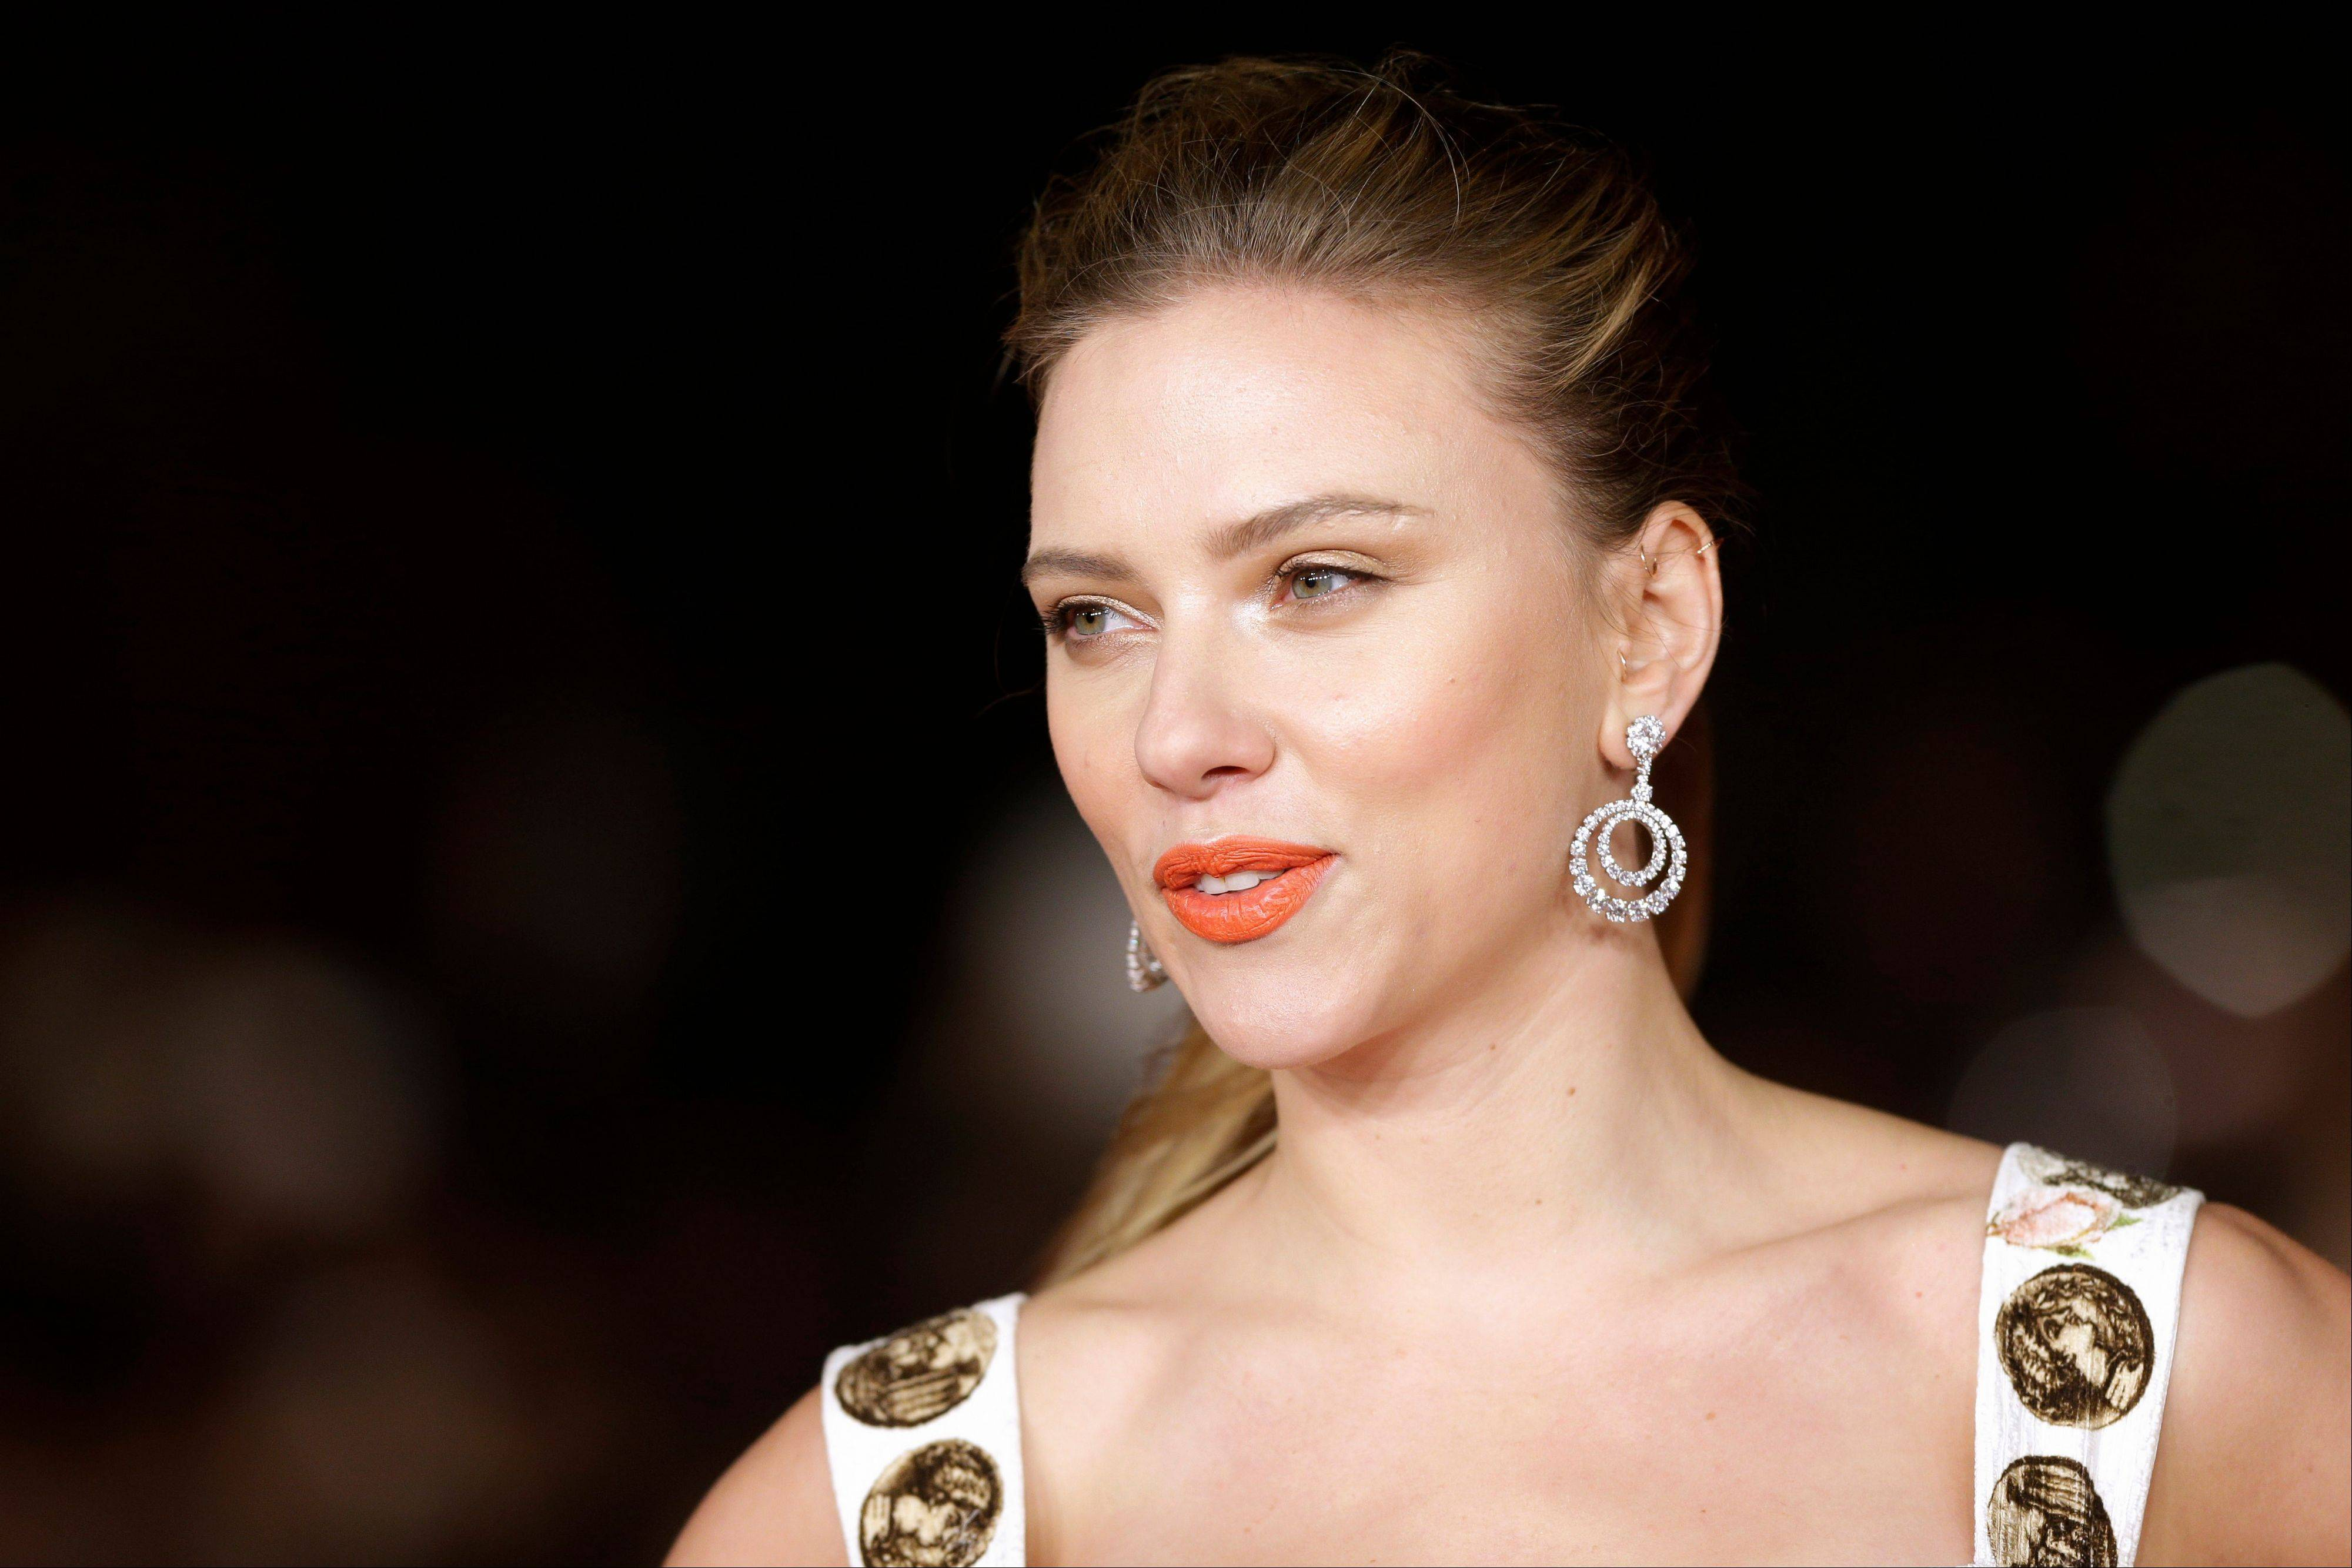 Scarlett Johansson arrives for the screening of the film 'Her' at the 8th edition of the Rome International Film Festival in Rome.